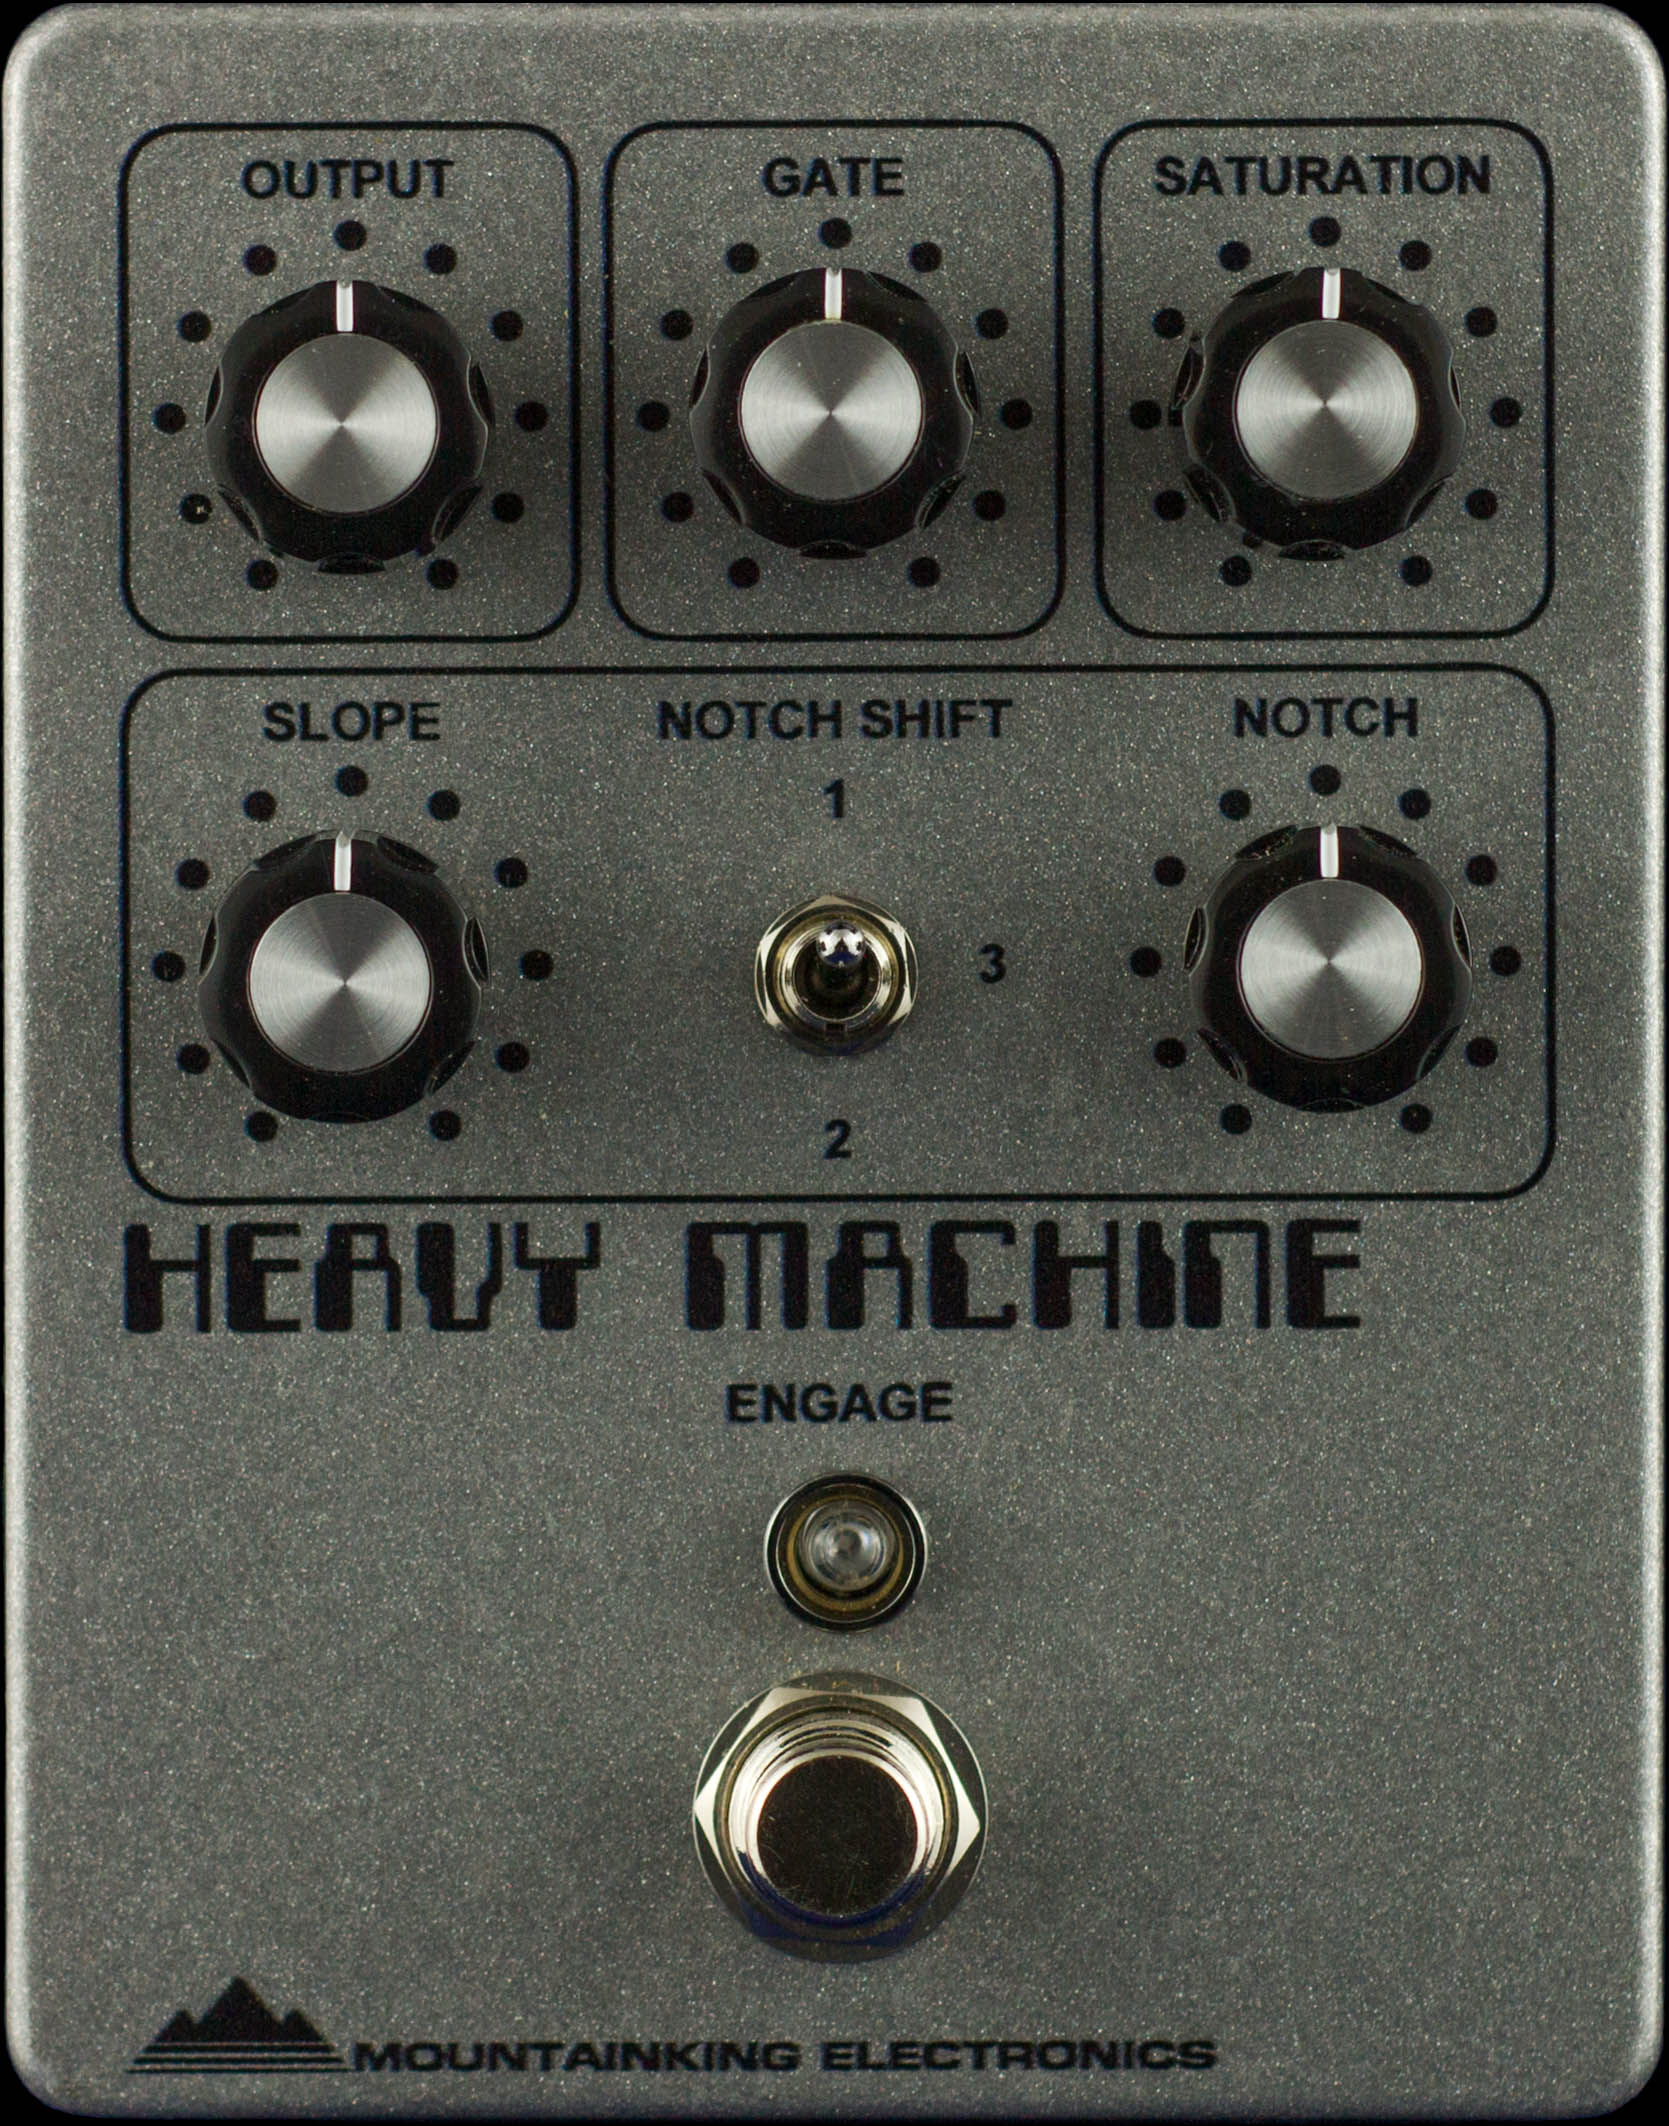 HEAVY MACHINE